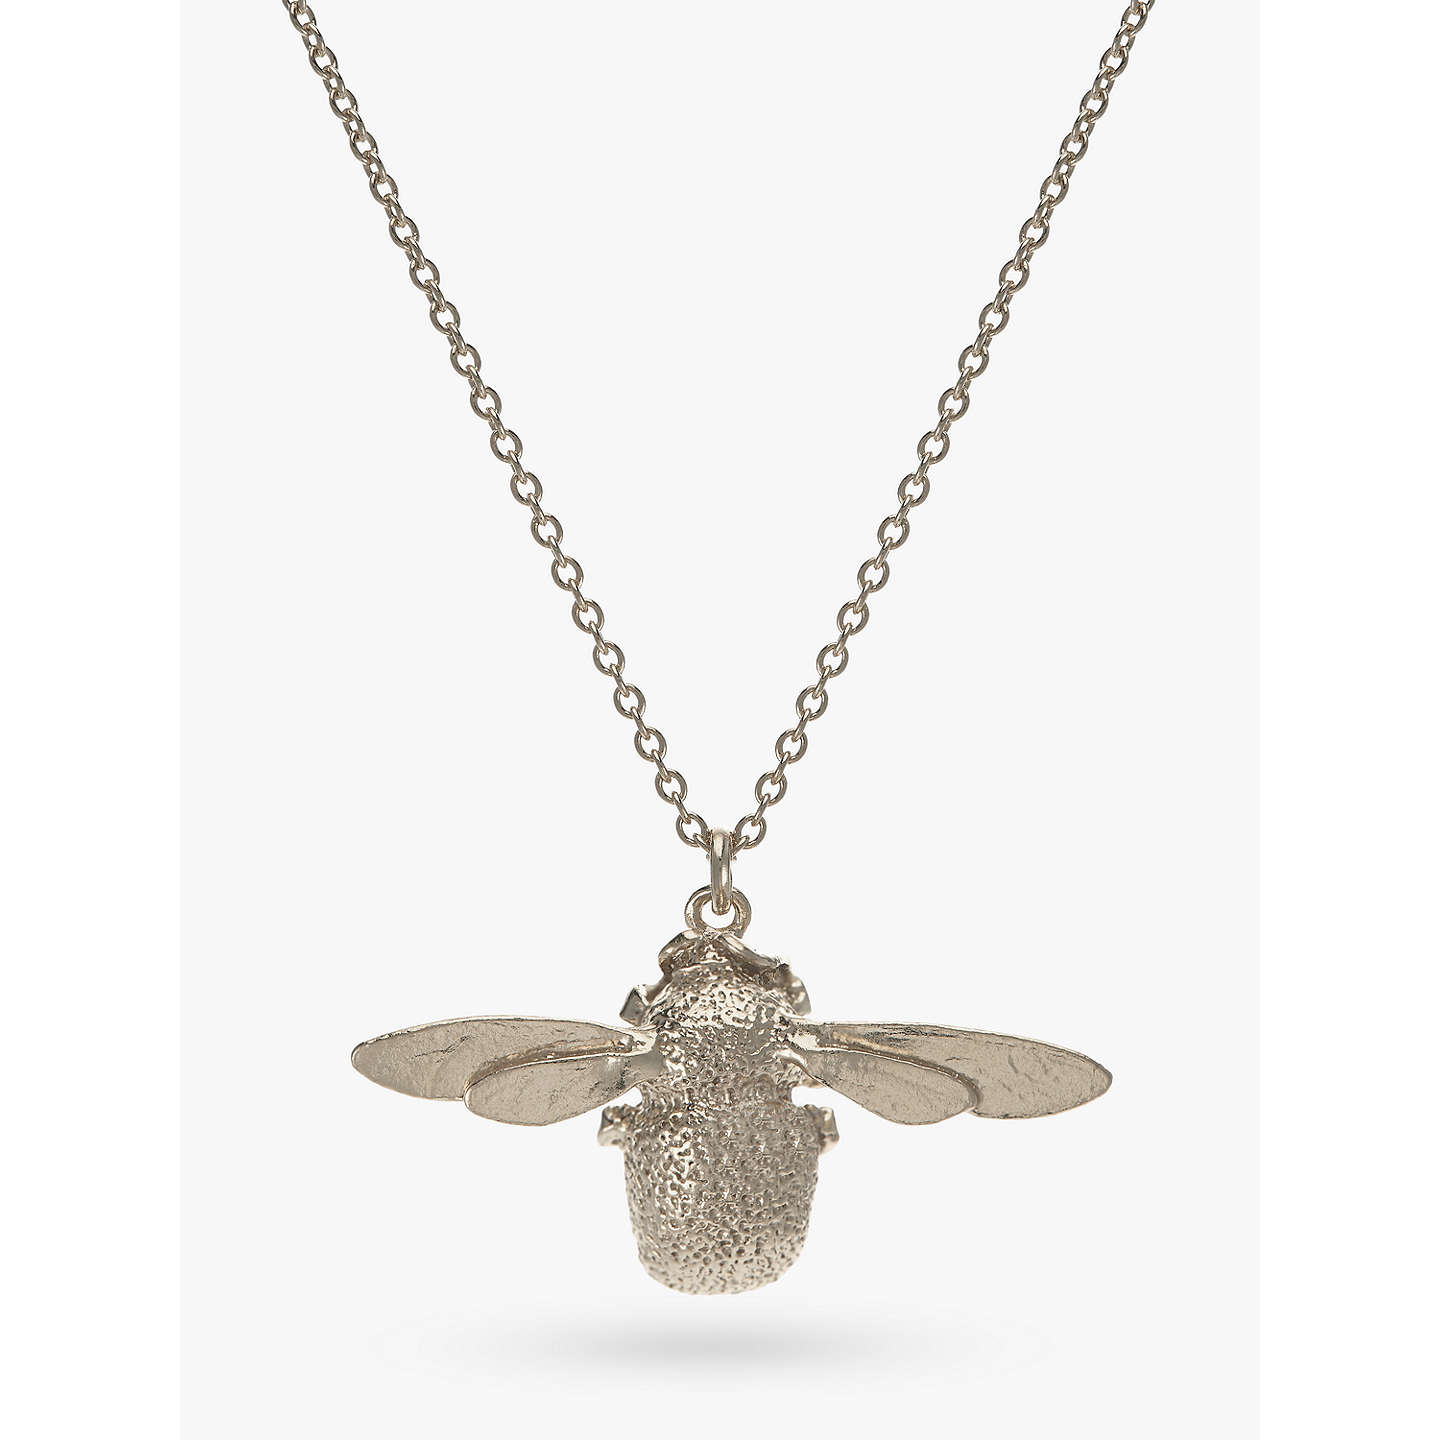 Alex monroe sterling silver bumble bee pendant necklace silver at buyalex monroe sterling silver bumble bee pendant necklace silver online at johnlewis aloadofball Gallery